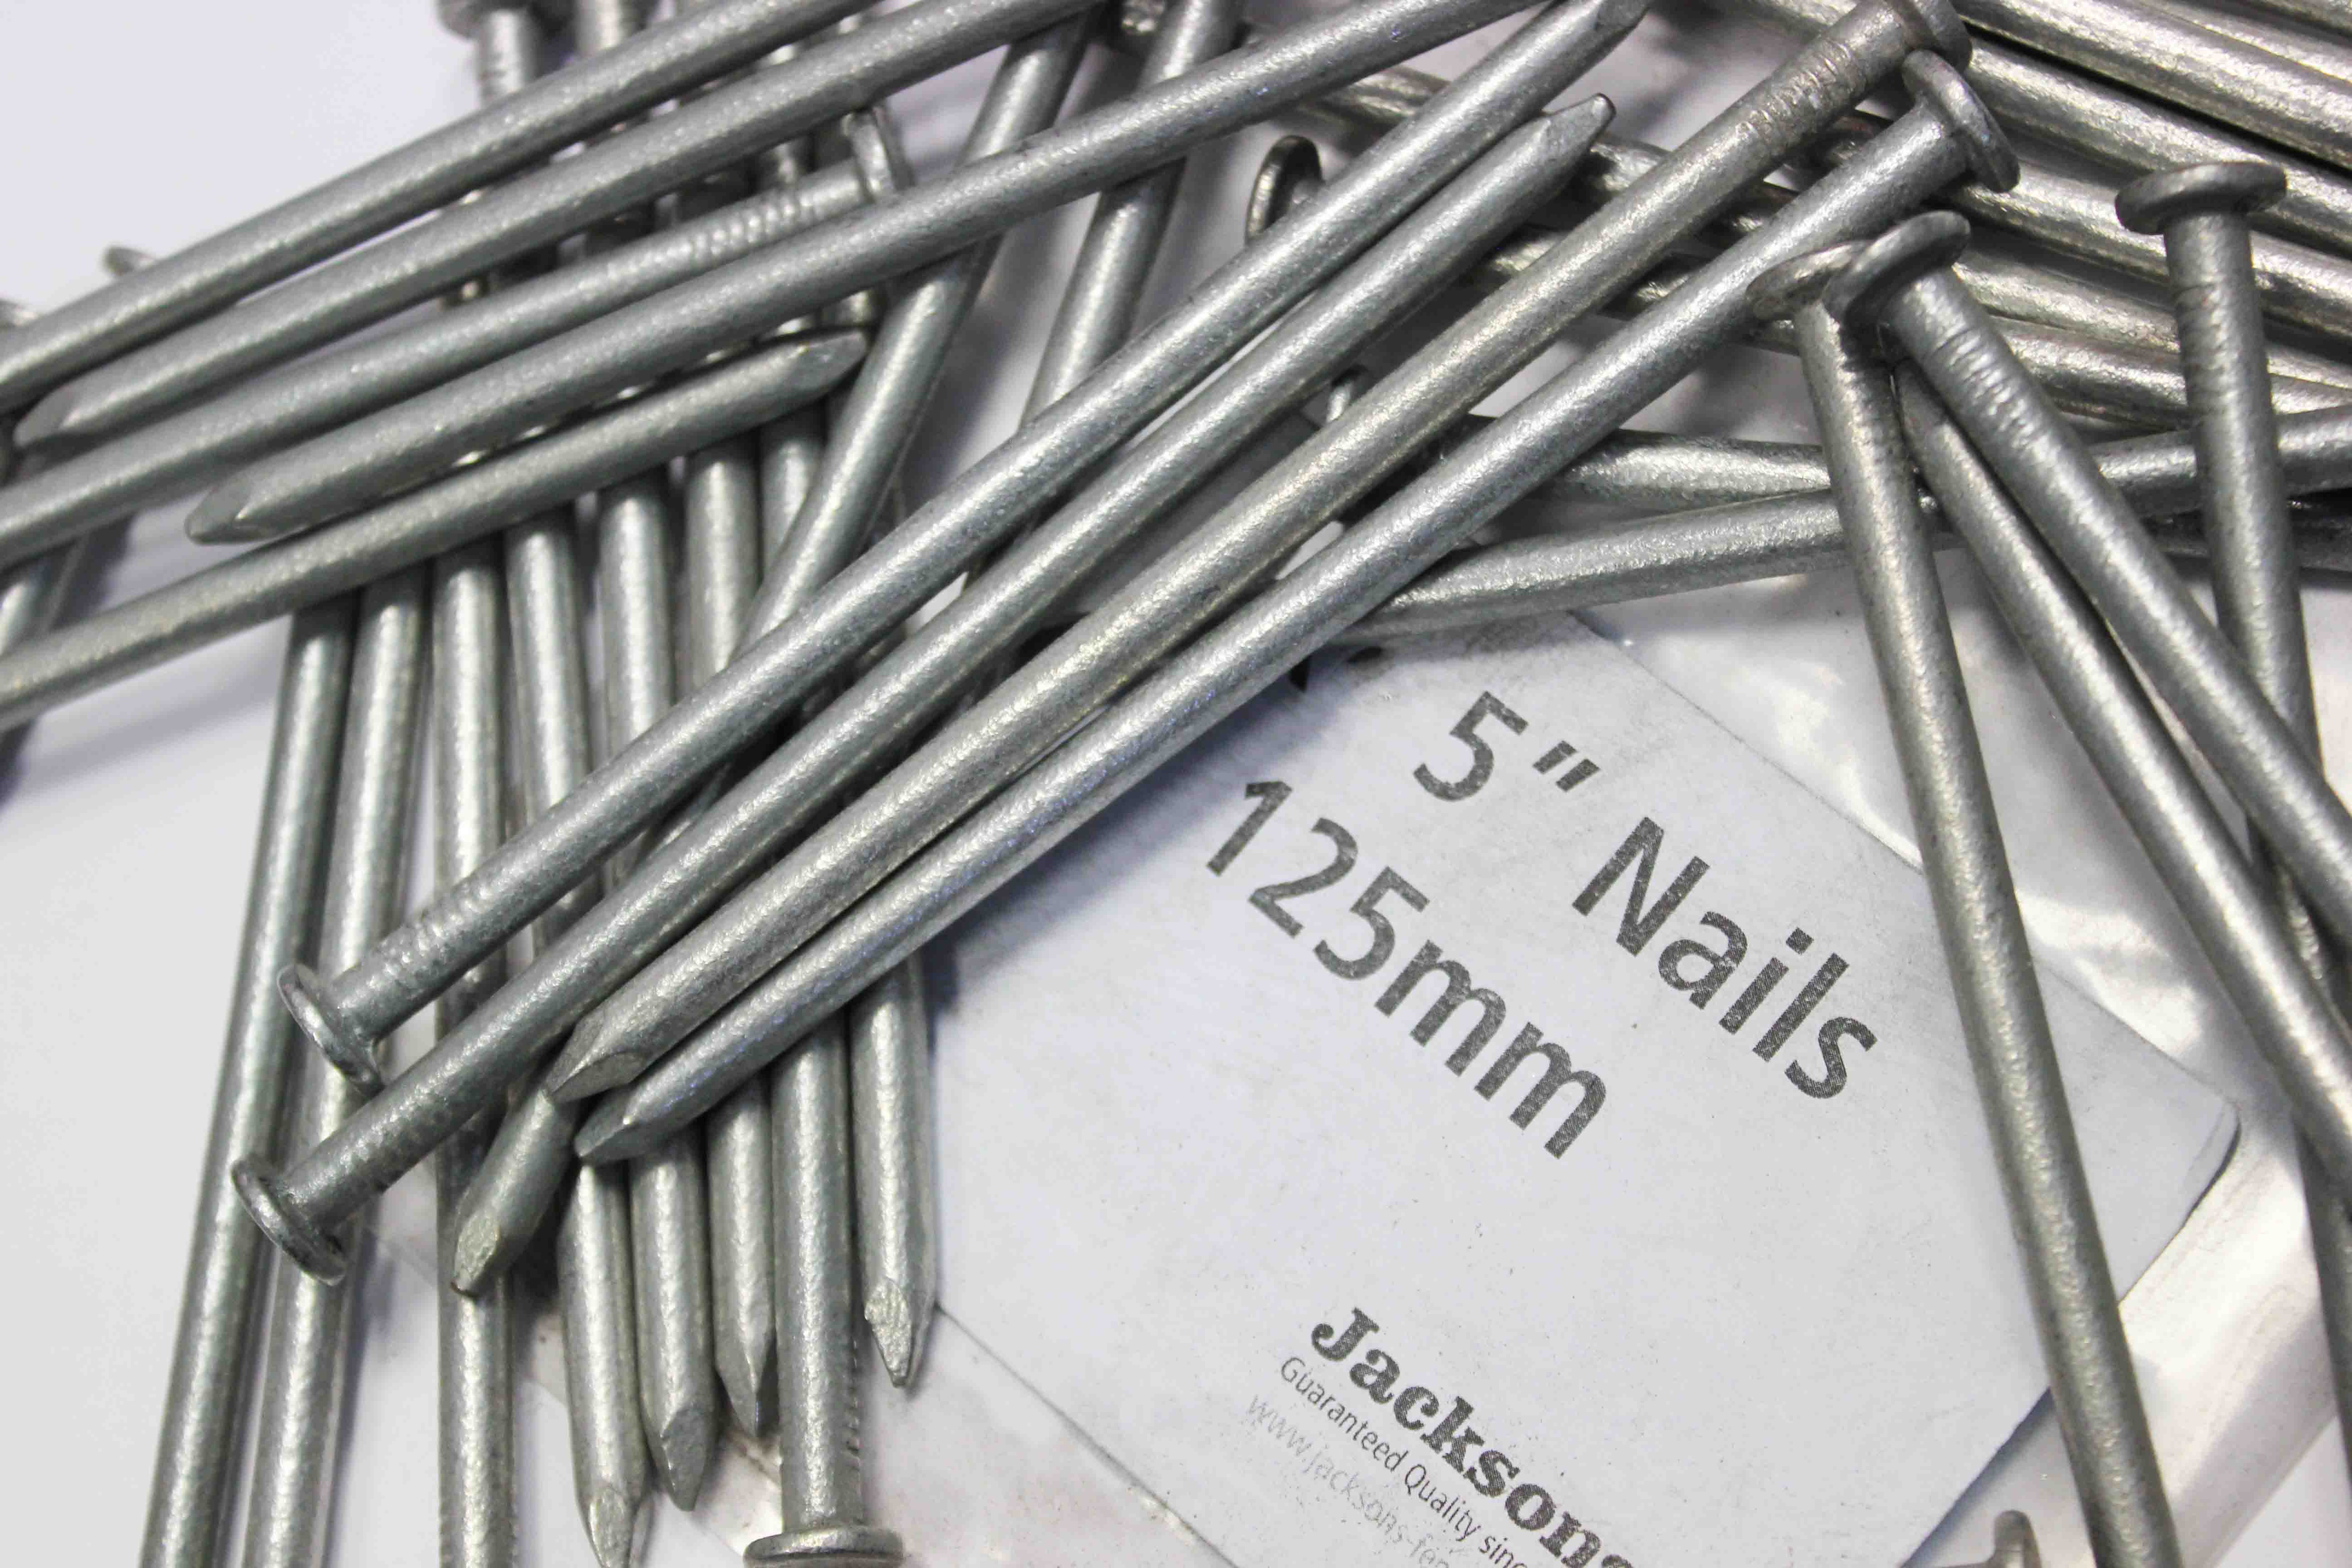 125mm galvanised 5 inch nails